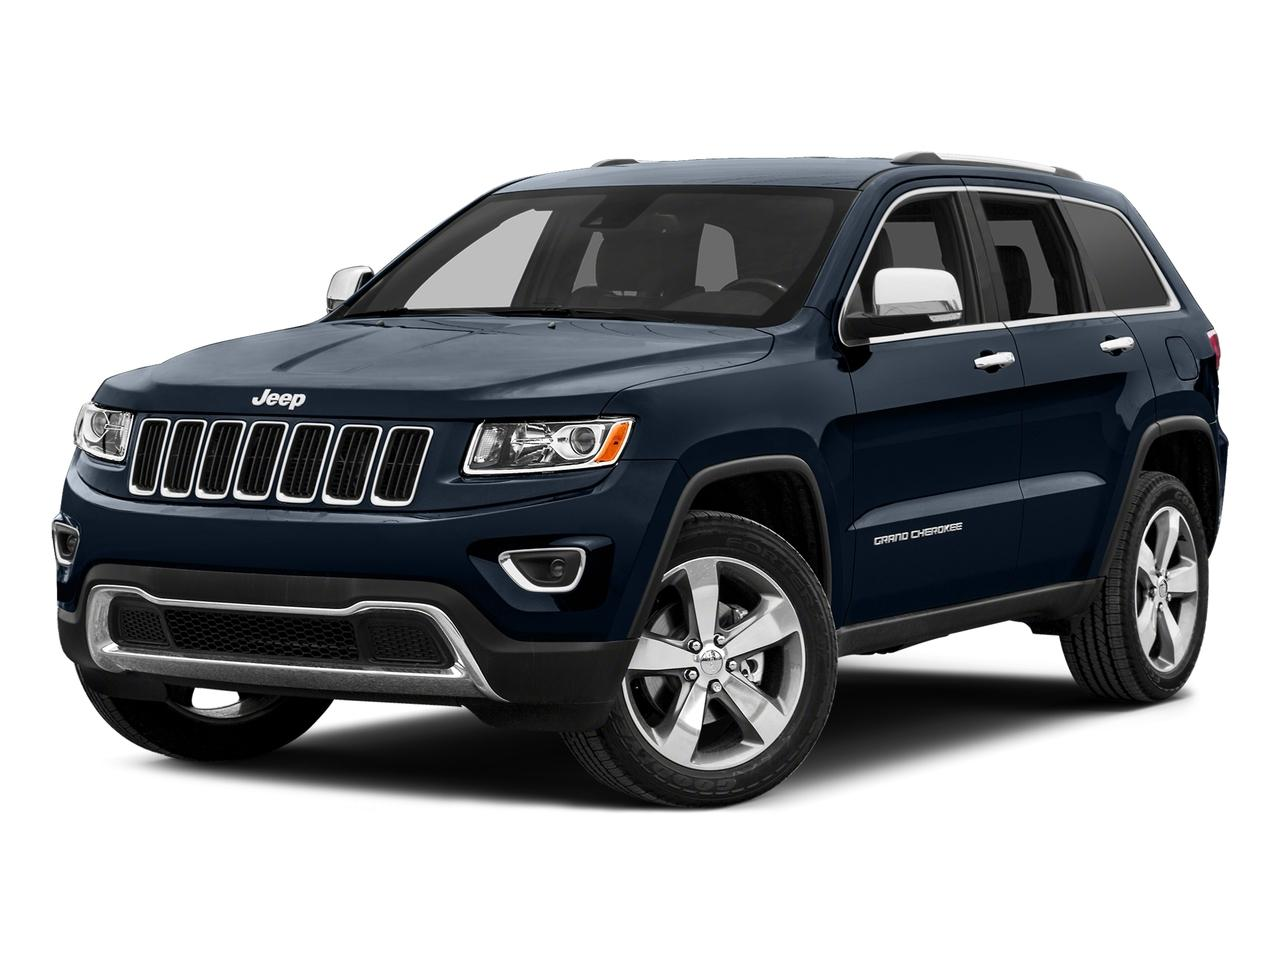 2015 Jeep Grand Cherokee Vehicle Photo in Portland, OR 97225